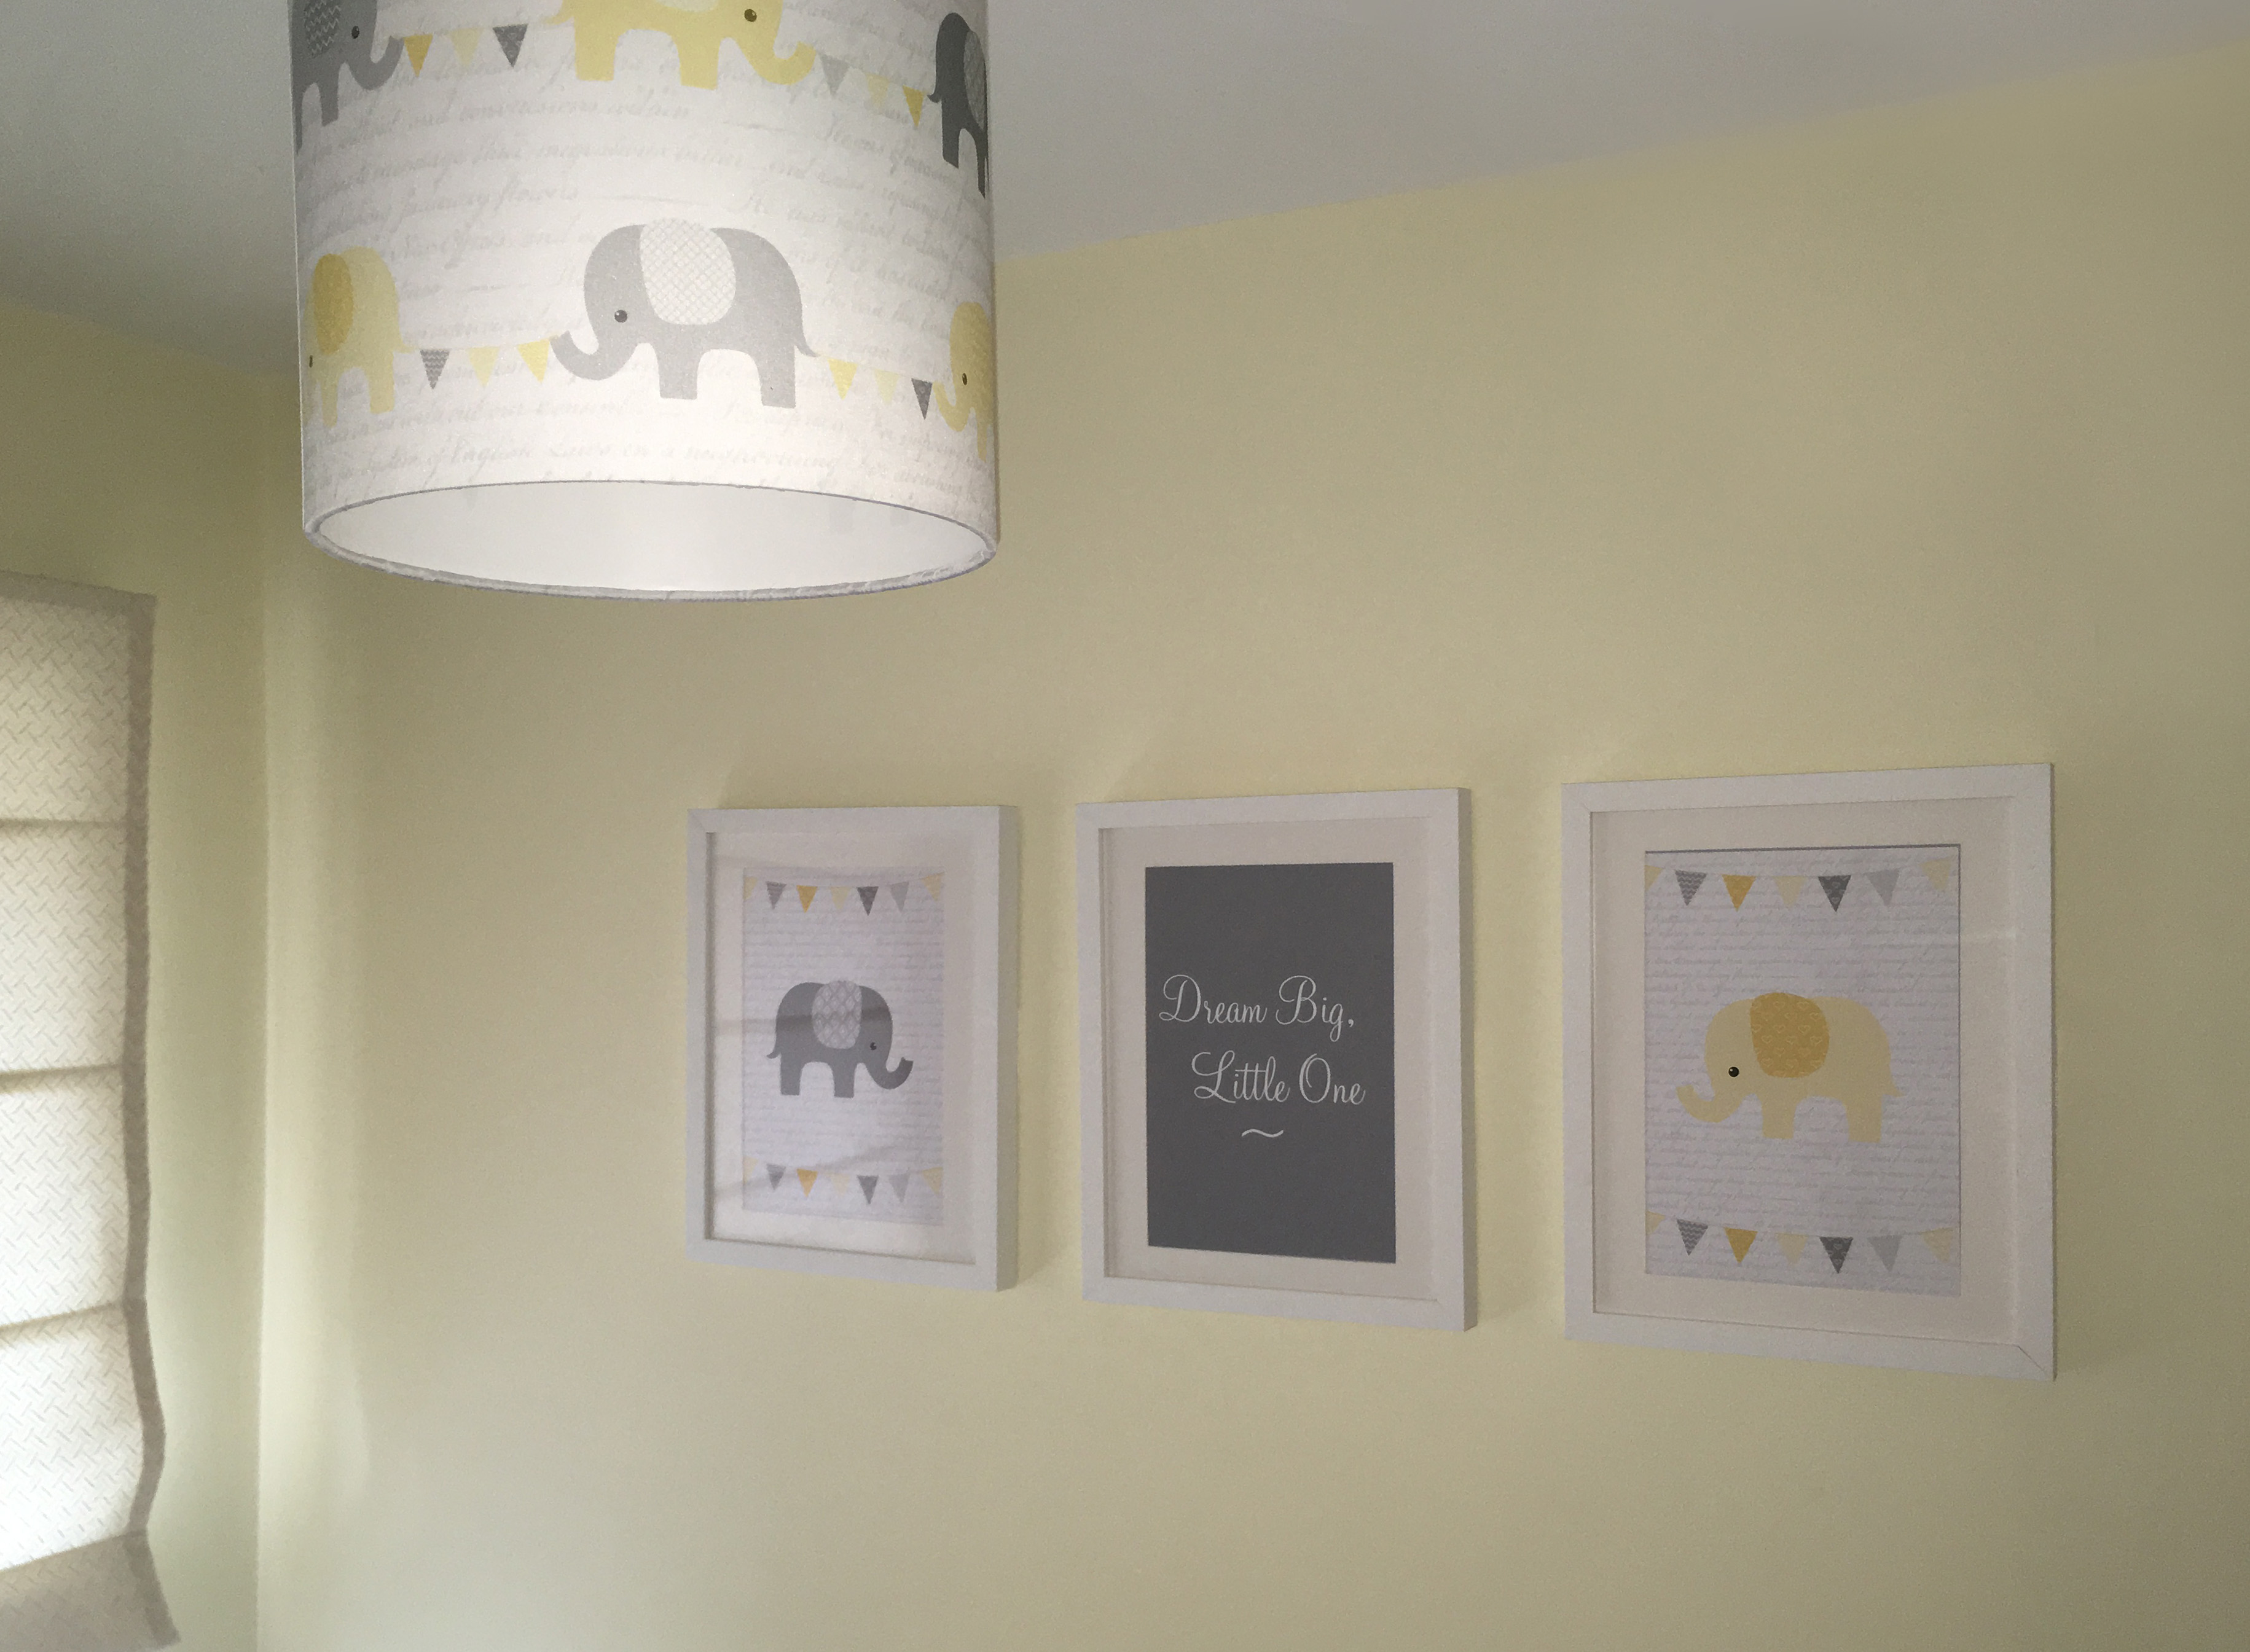 barker_cards_babys_nursery_childrens_bedroom_wall_decor_yellow_grey_neutral_elephants_bunting_